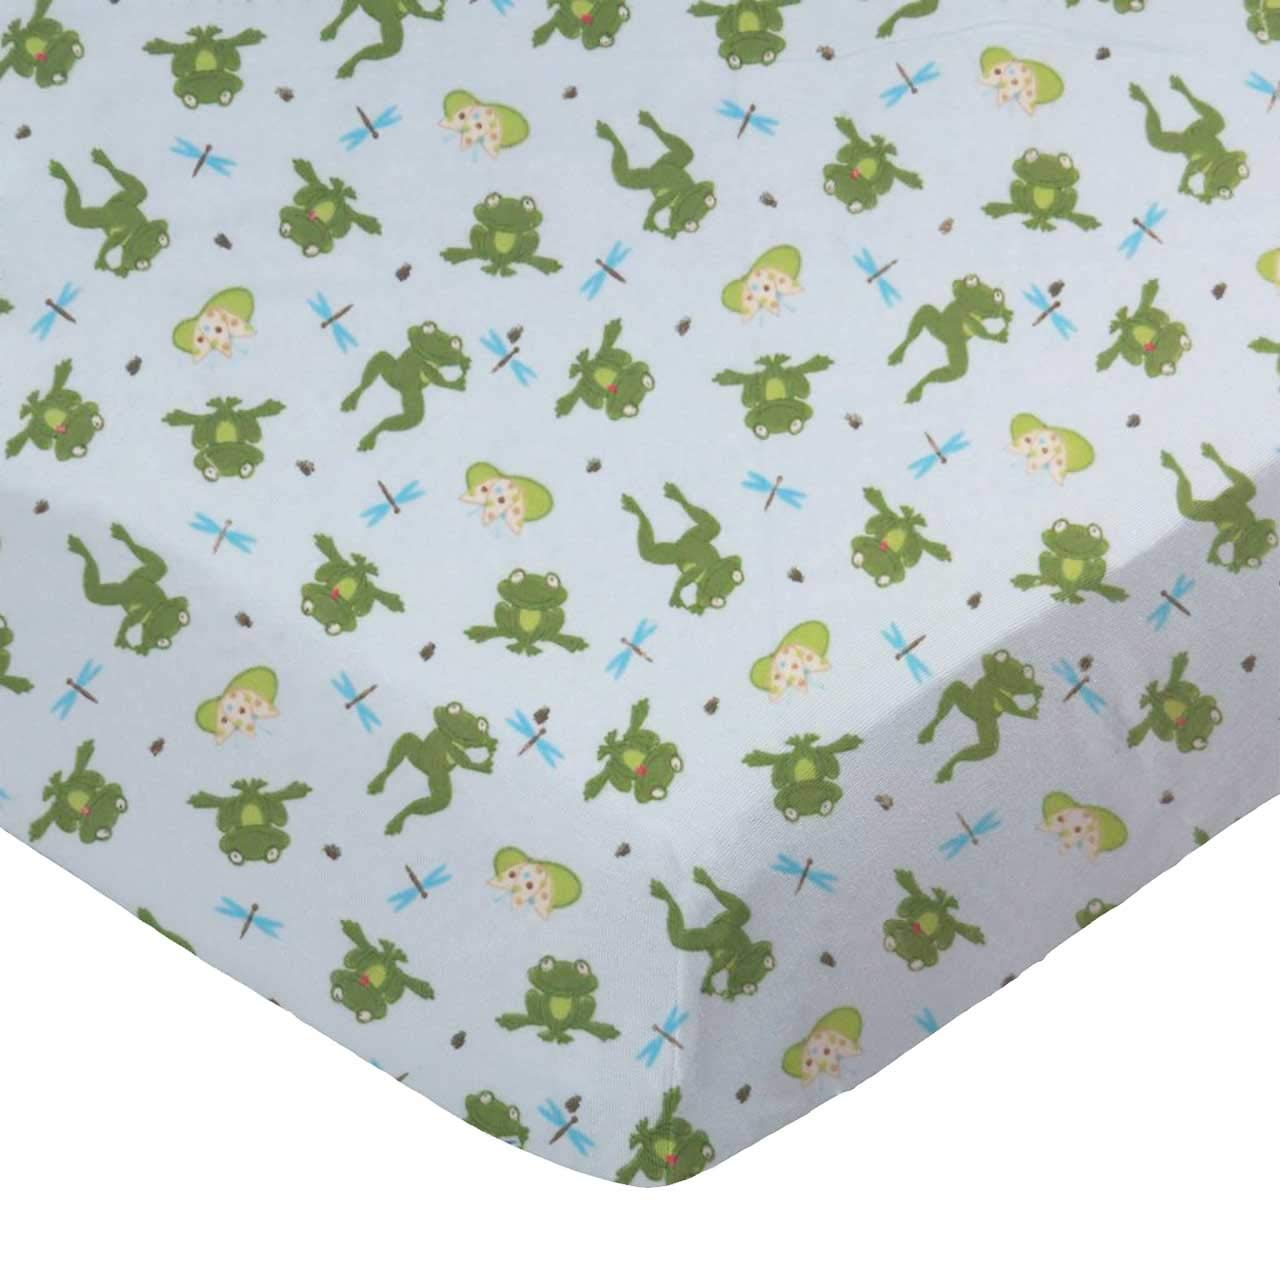 SheetWorld Fitted 100% Cotton Flannel Pack N Play Sheet Fits Graco Square Play Yard 36 x 36, Frogs n Pods, Made in USA